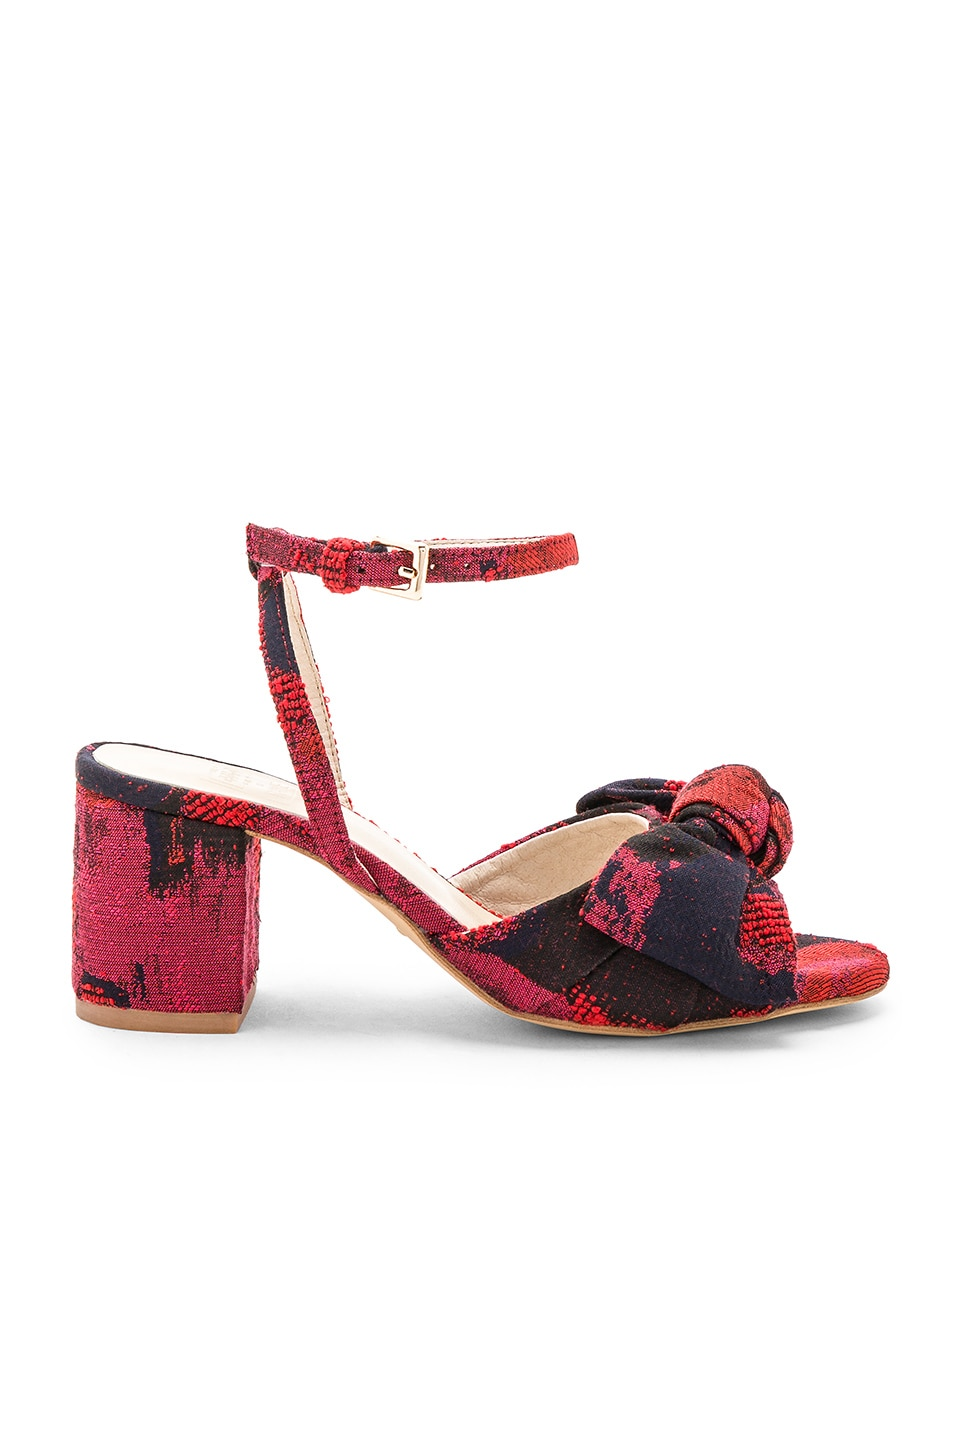 x STONE_COLD_FOX Carmine Calf Hair Sandal in Black. - size 7 (also in 5.5,6,6.5,7.5) Raye